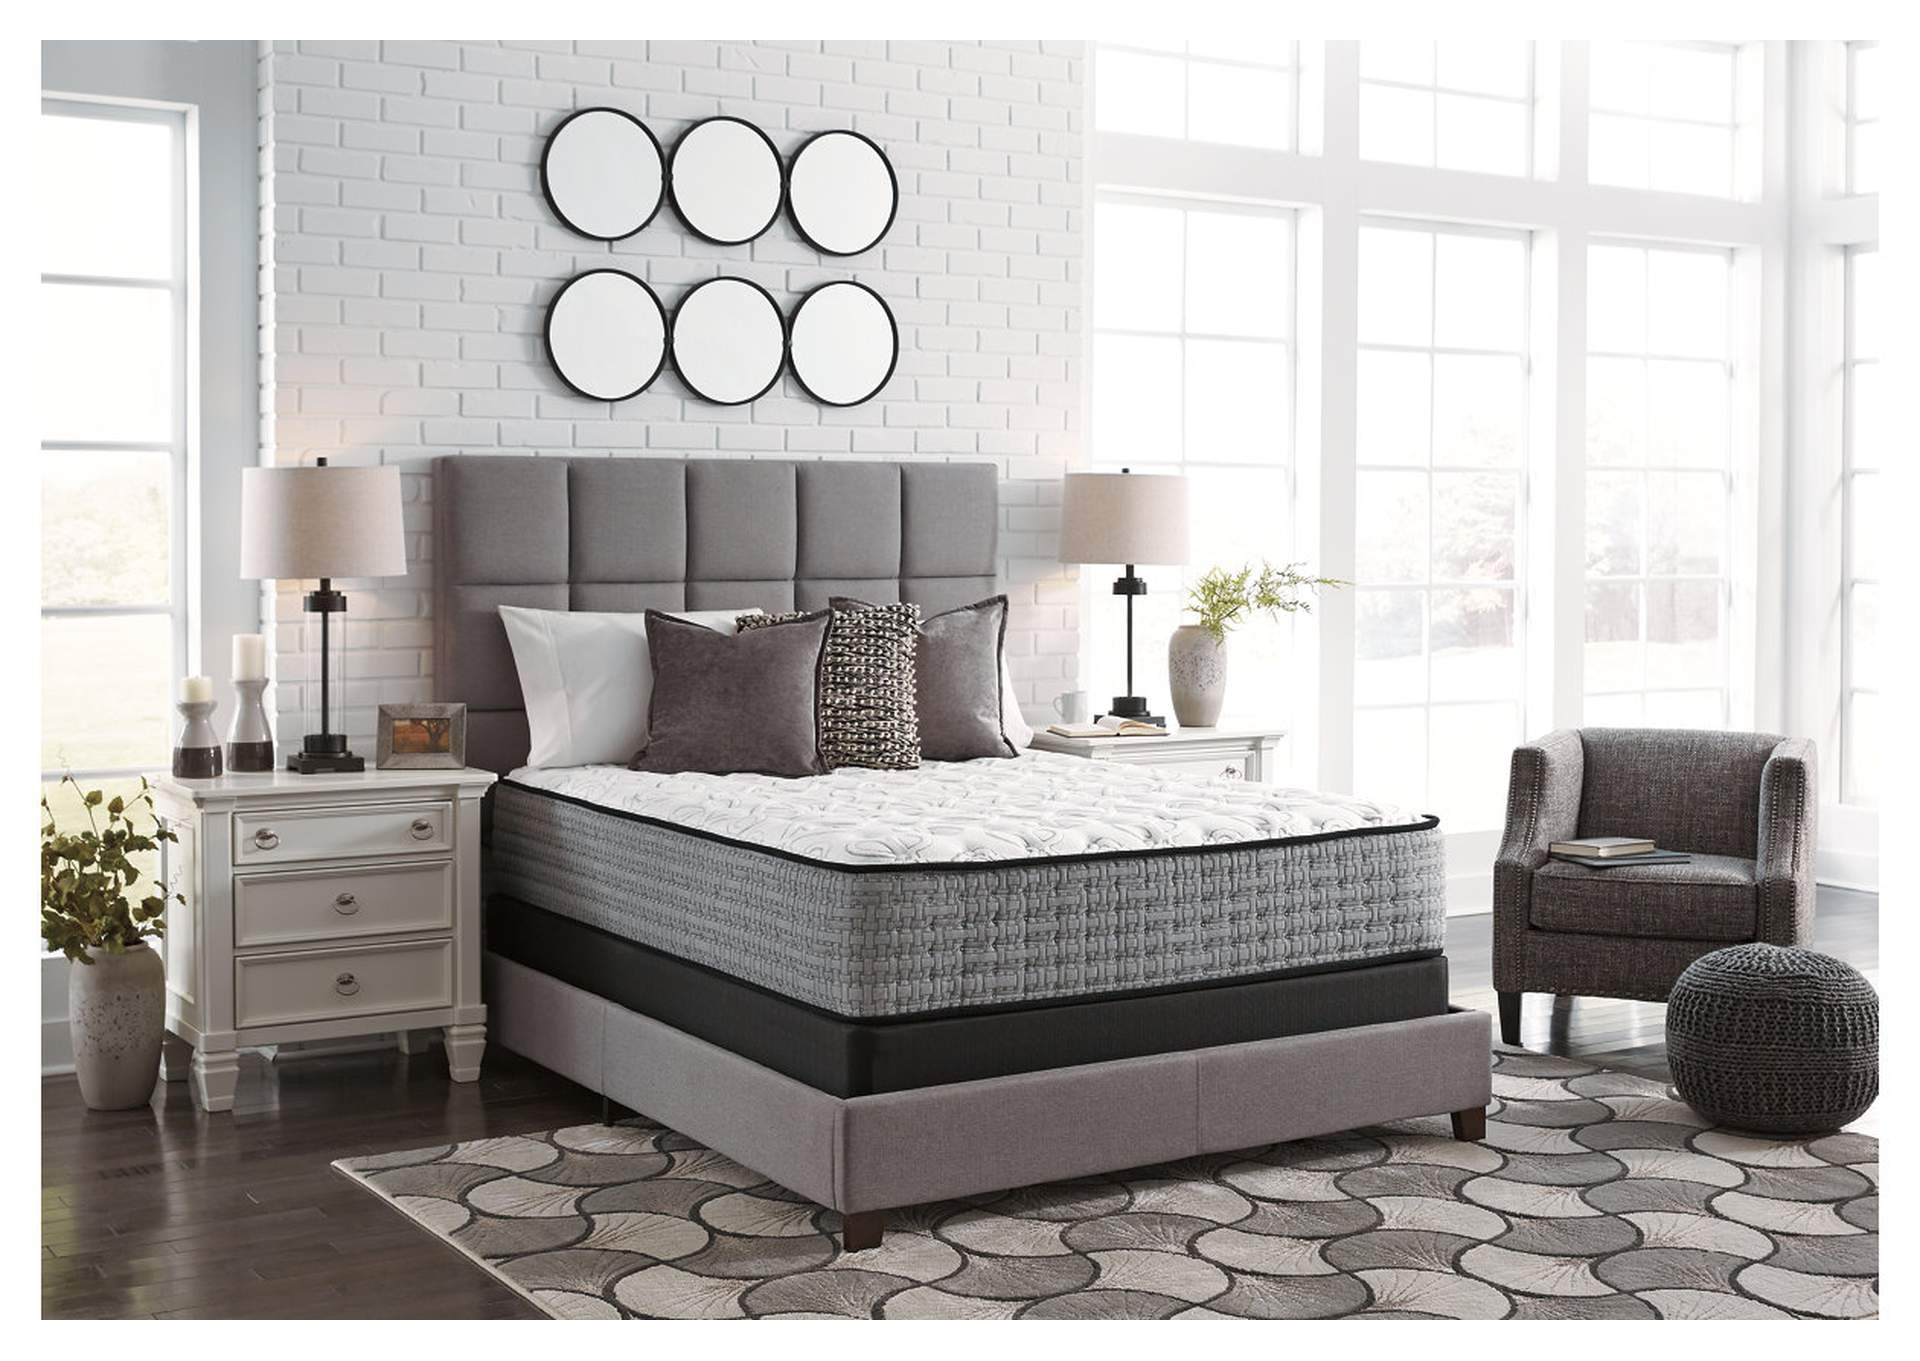 Mt. Rogers Ltd. White Firm Queen Mattress,Sierra Sleep by Ashley